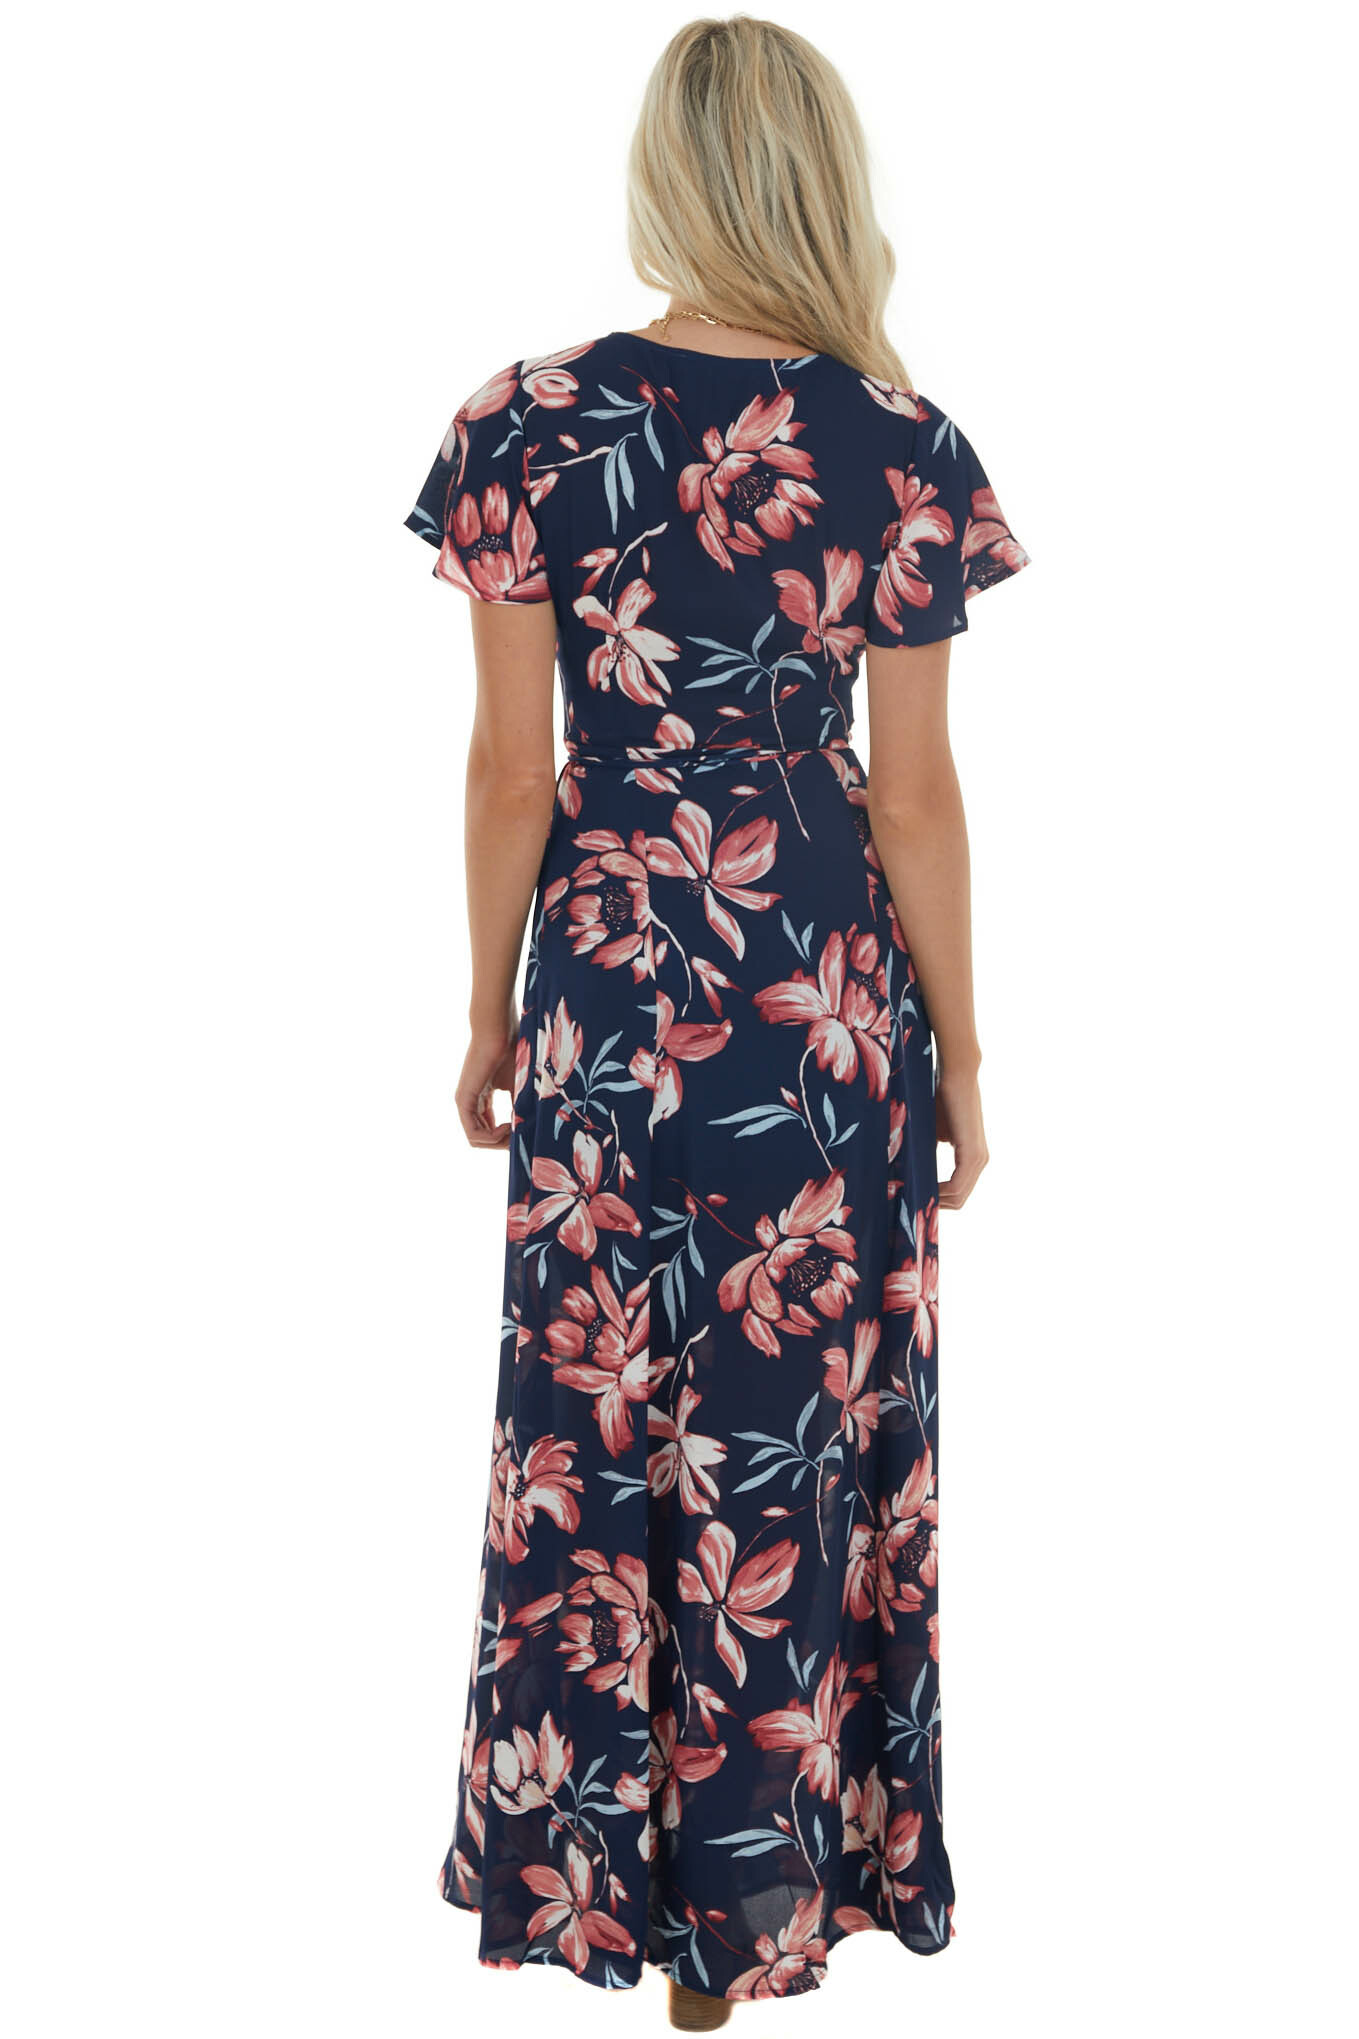 Navy Floral Print Wrap Maxi Dress with Tie